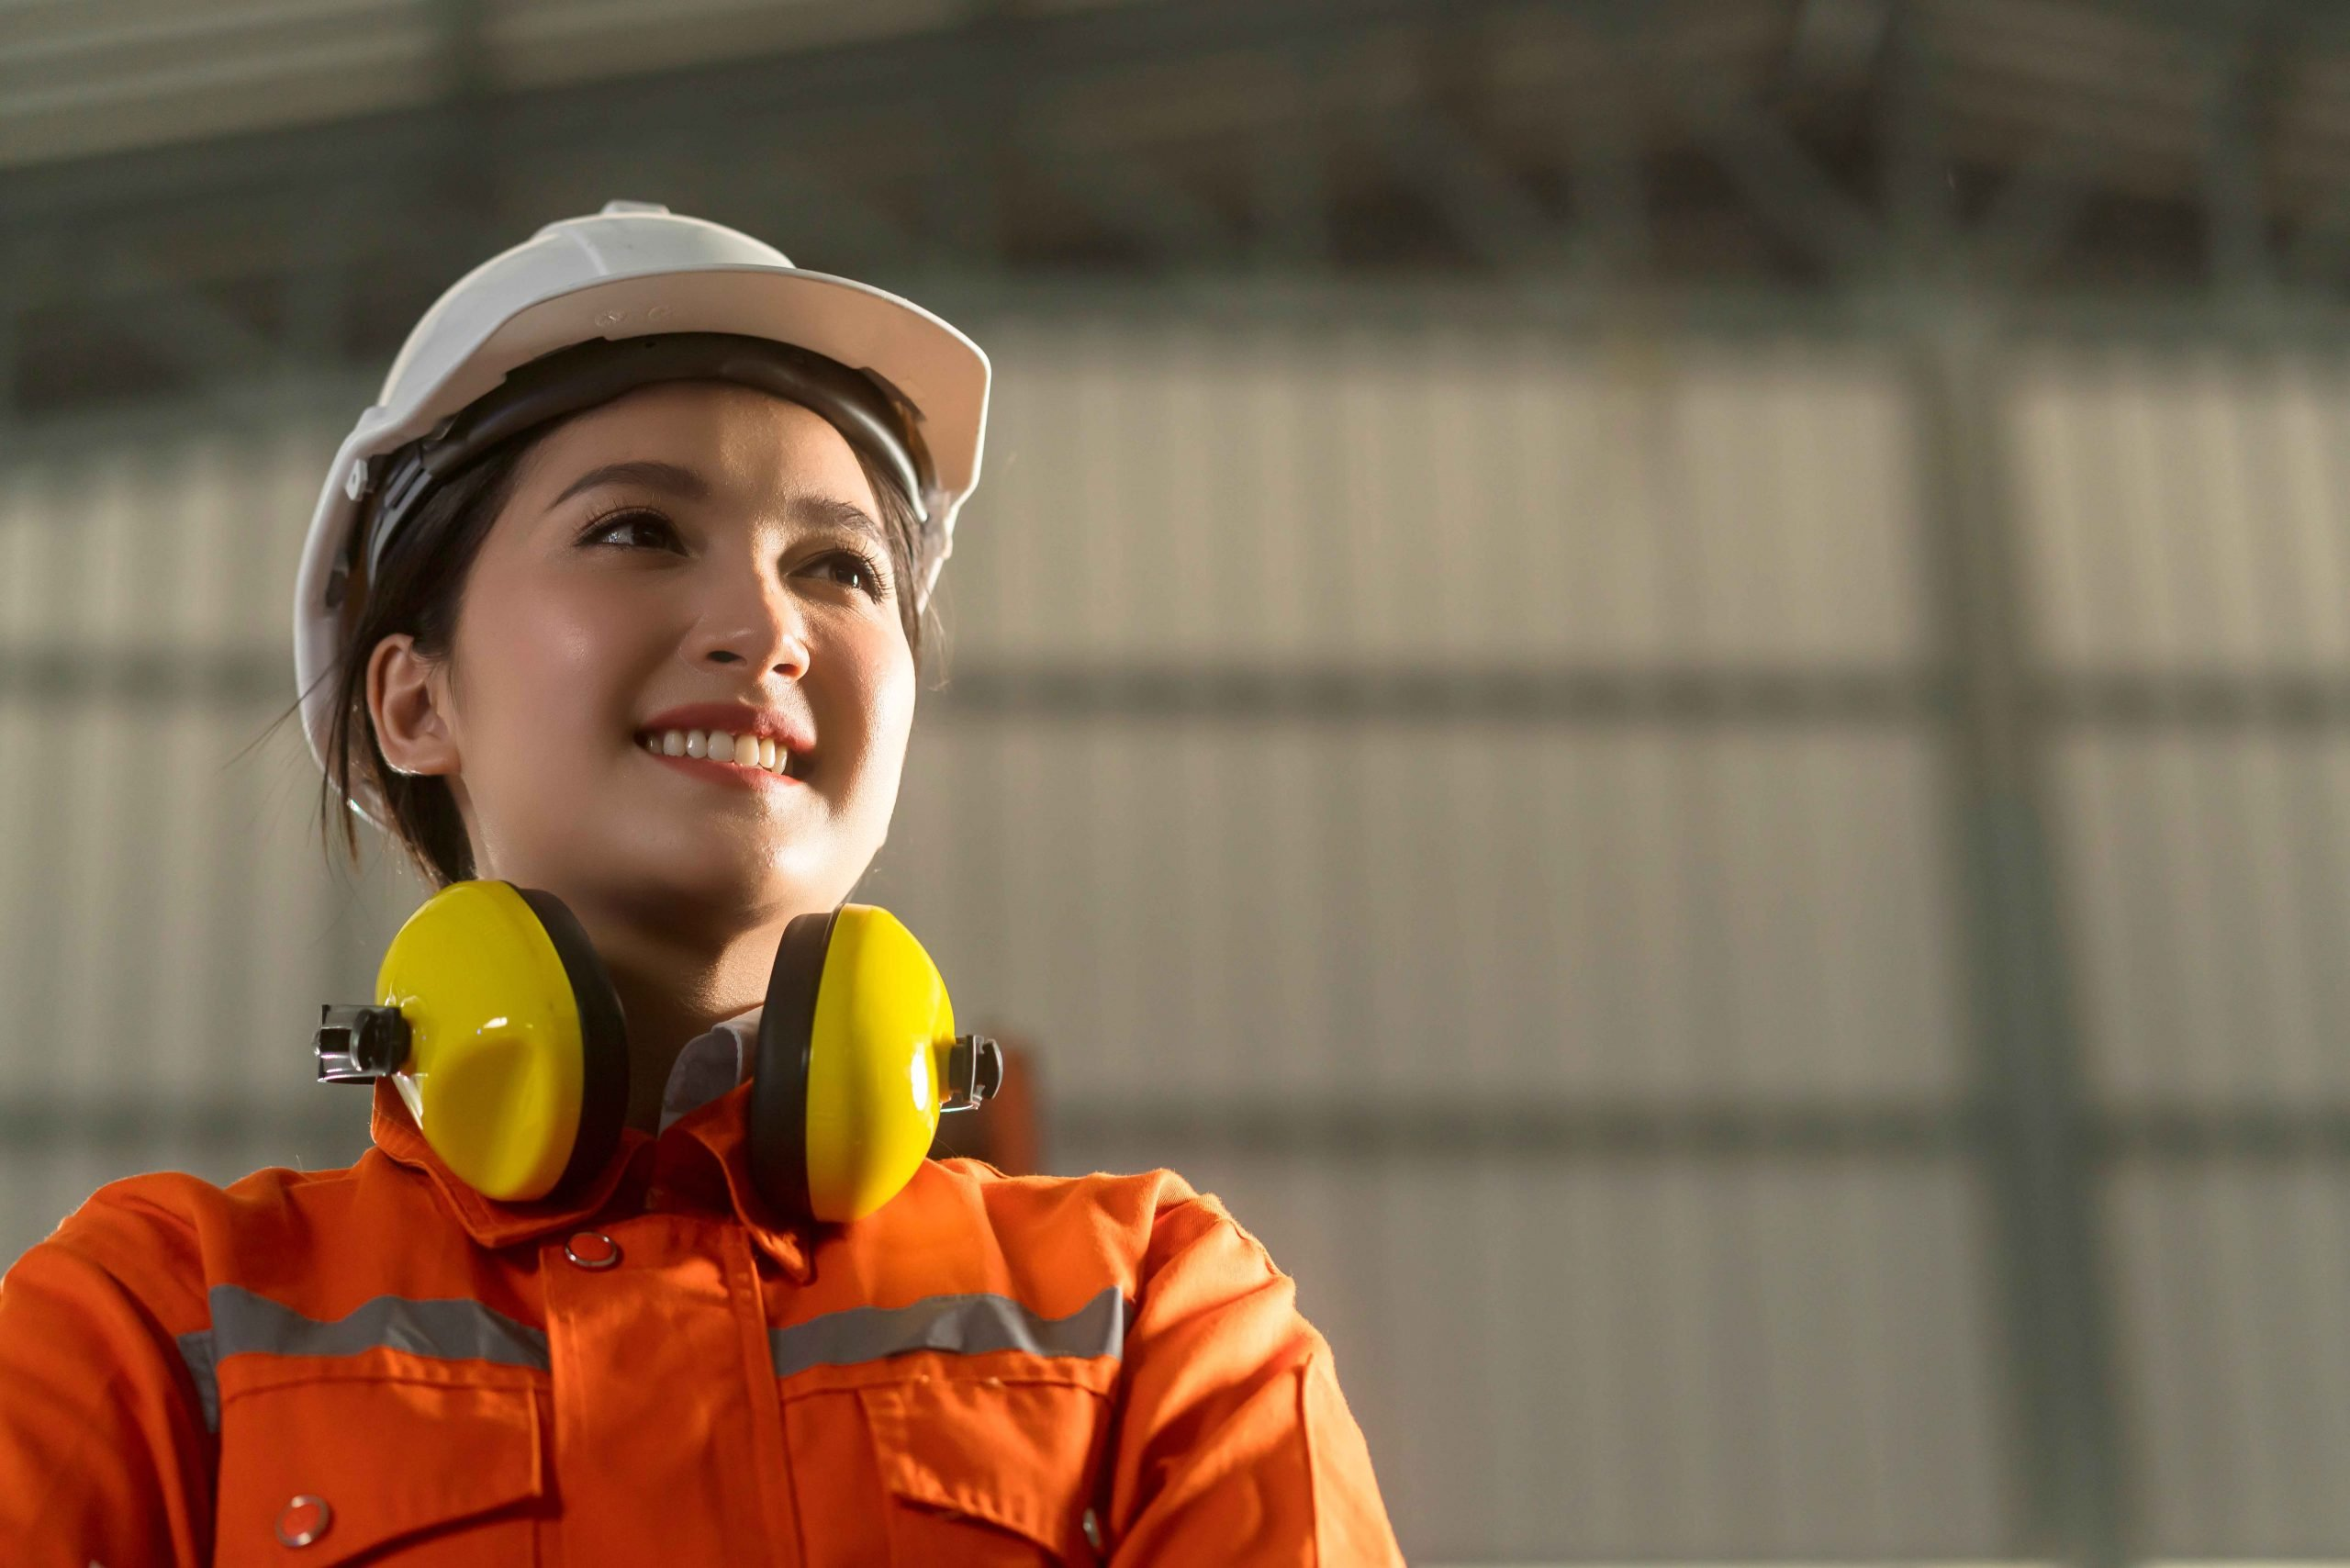 portrait of asian female engineer wearing uniform and saftey helmet standing confident and cheerful next to automation robot arm machine in factory background